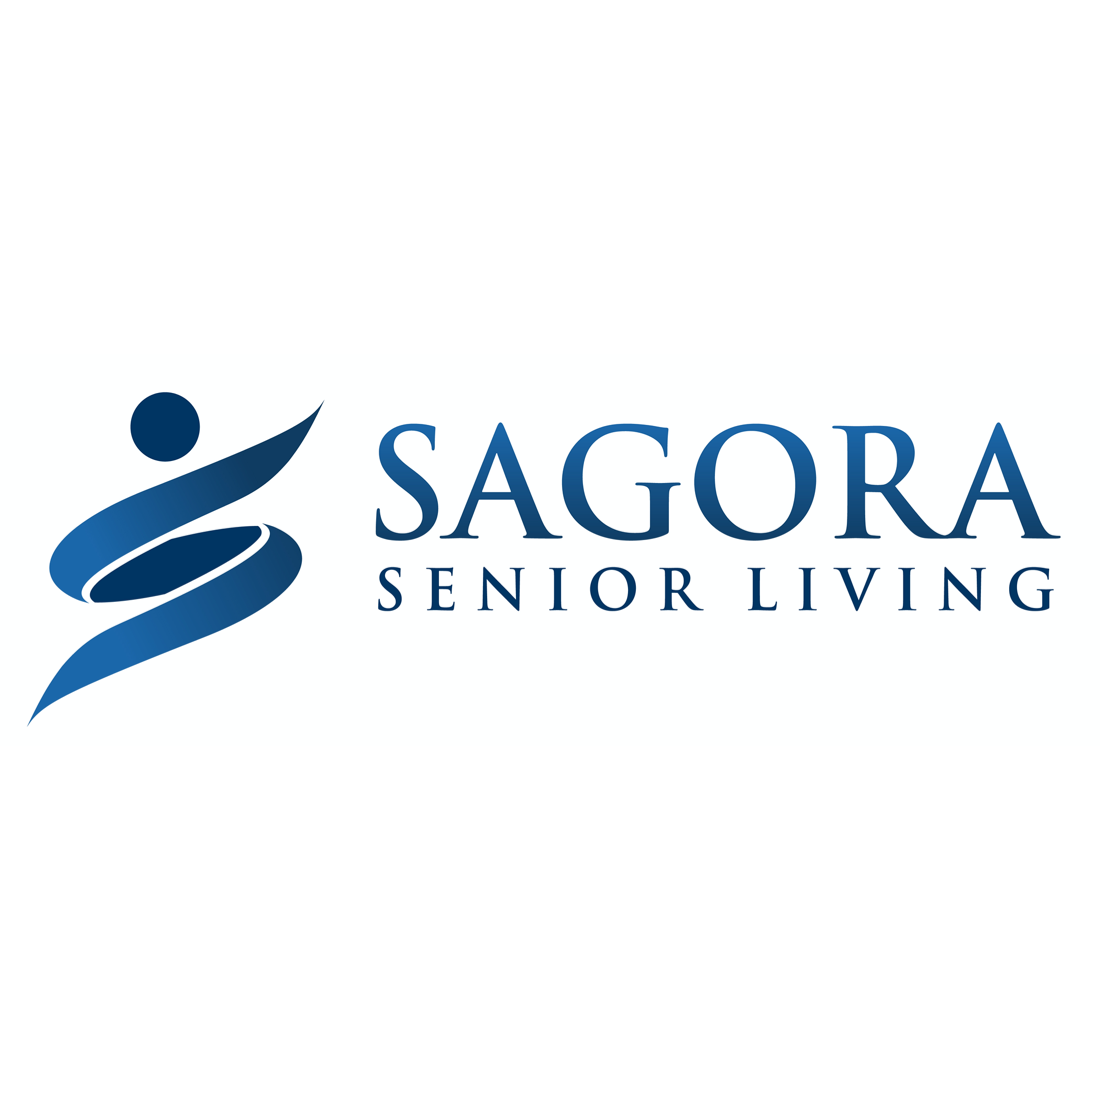 sagora senior living logo